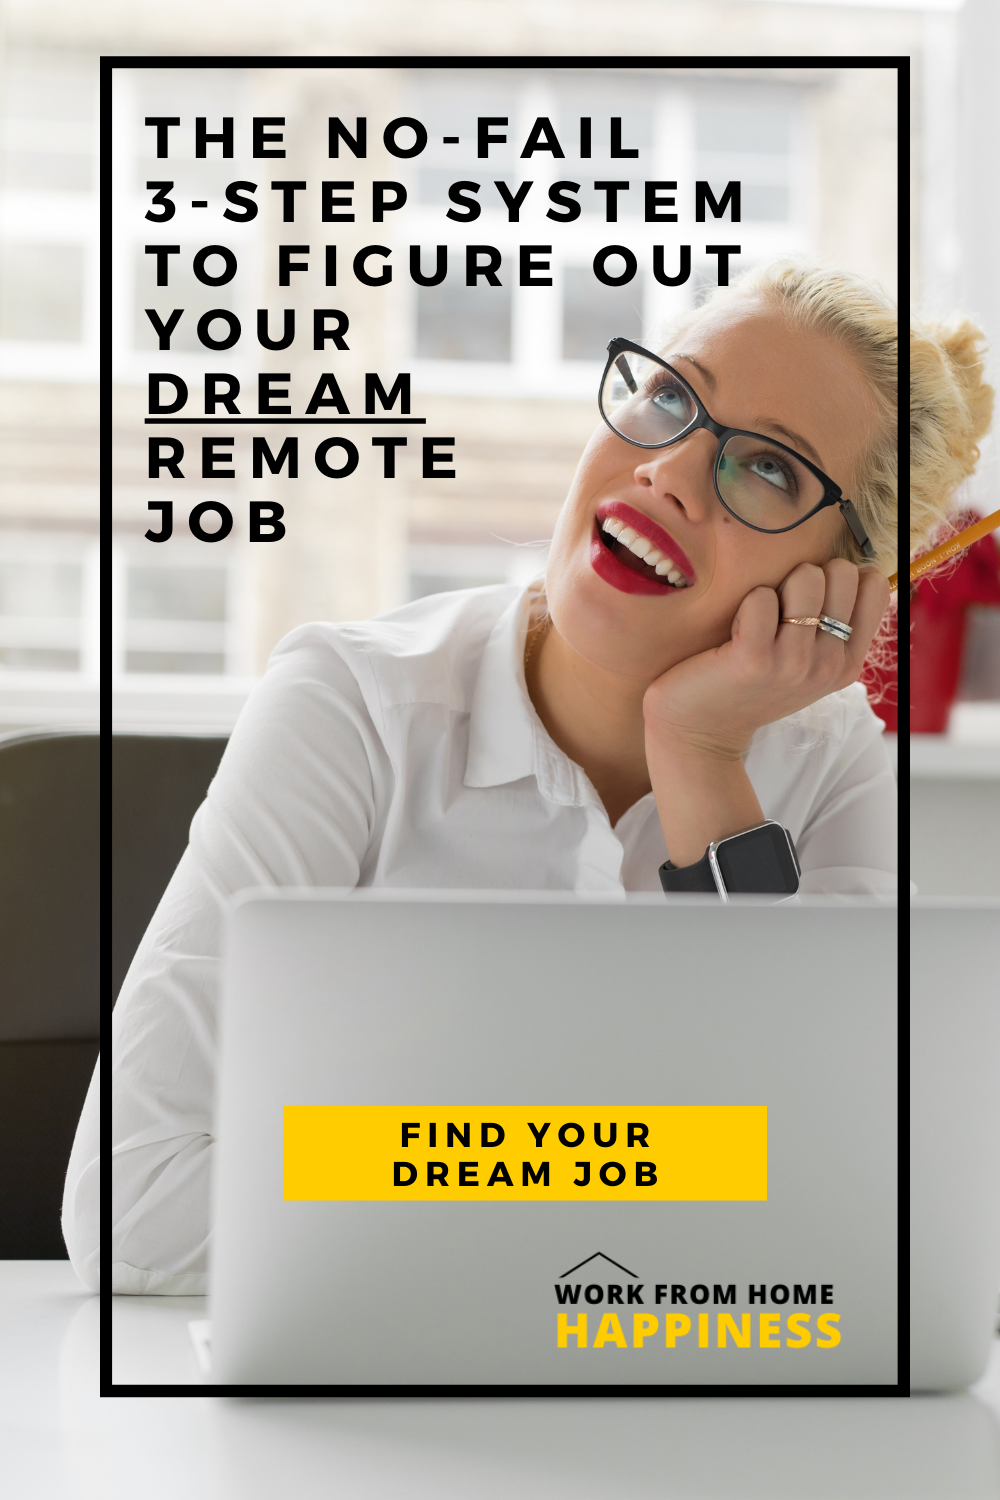 The No-Fail 3-Step System to Figure Out Your Dream Remote Job